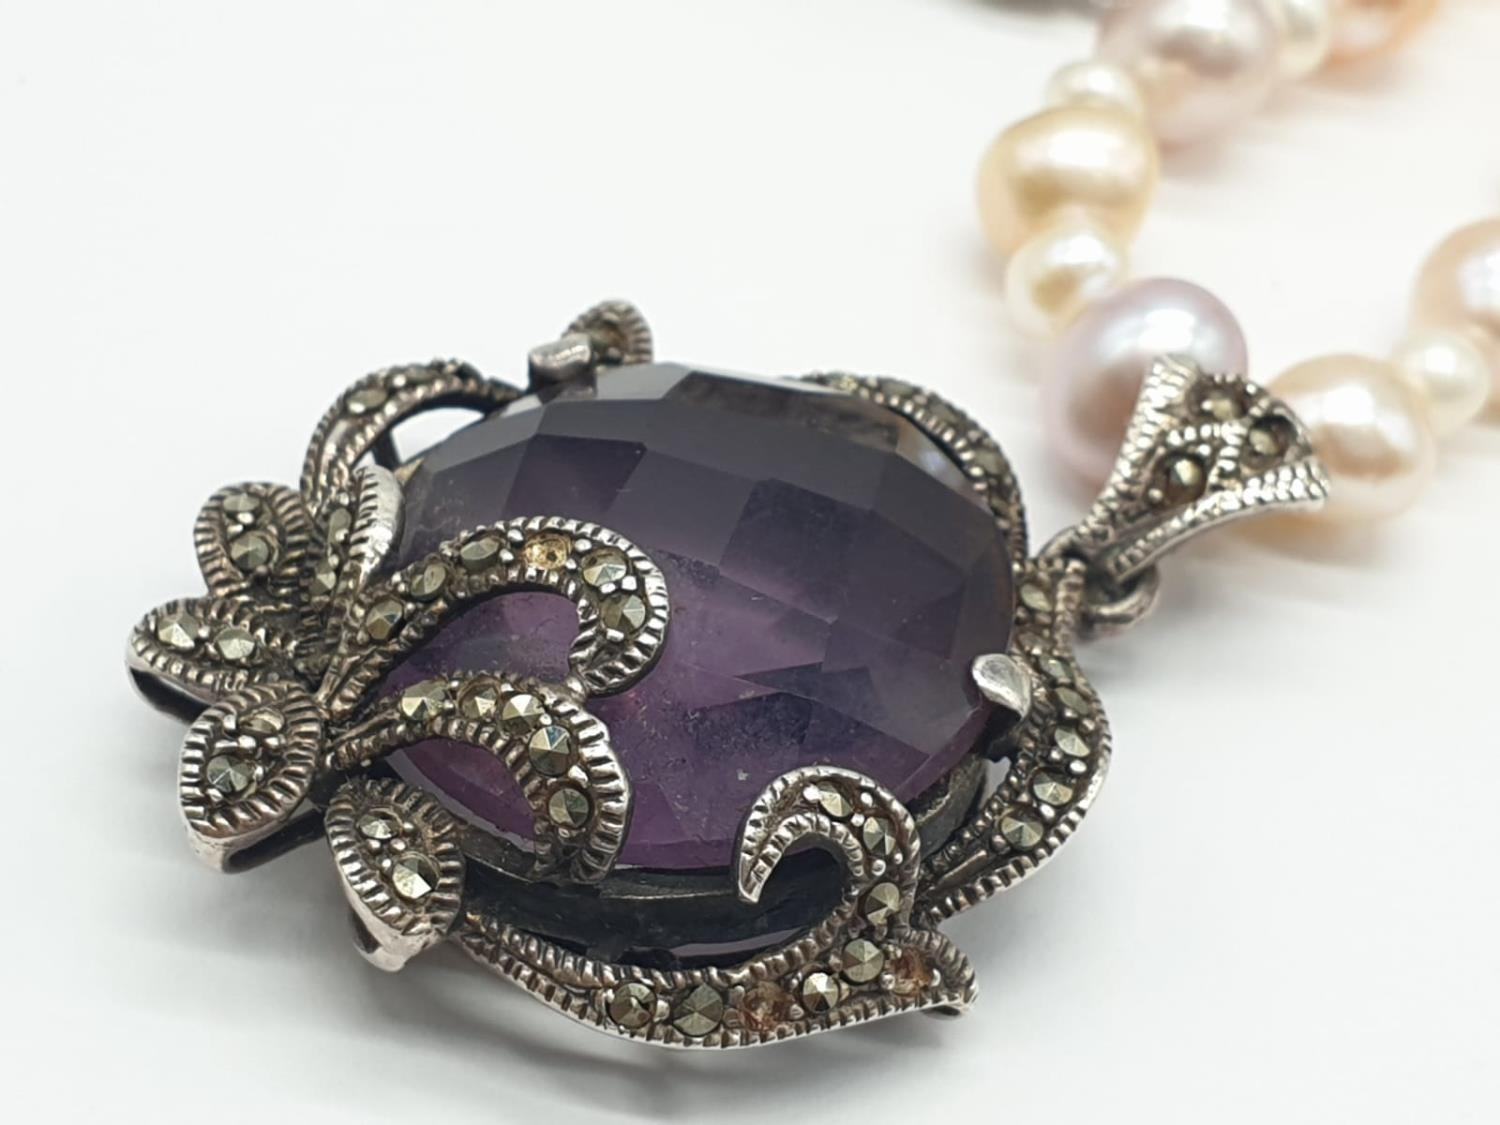 Amethyst and Marcasite NECKLACE with Freshwater Pearl and Silver setting. 40g 44cm - Image 3 of 8